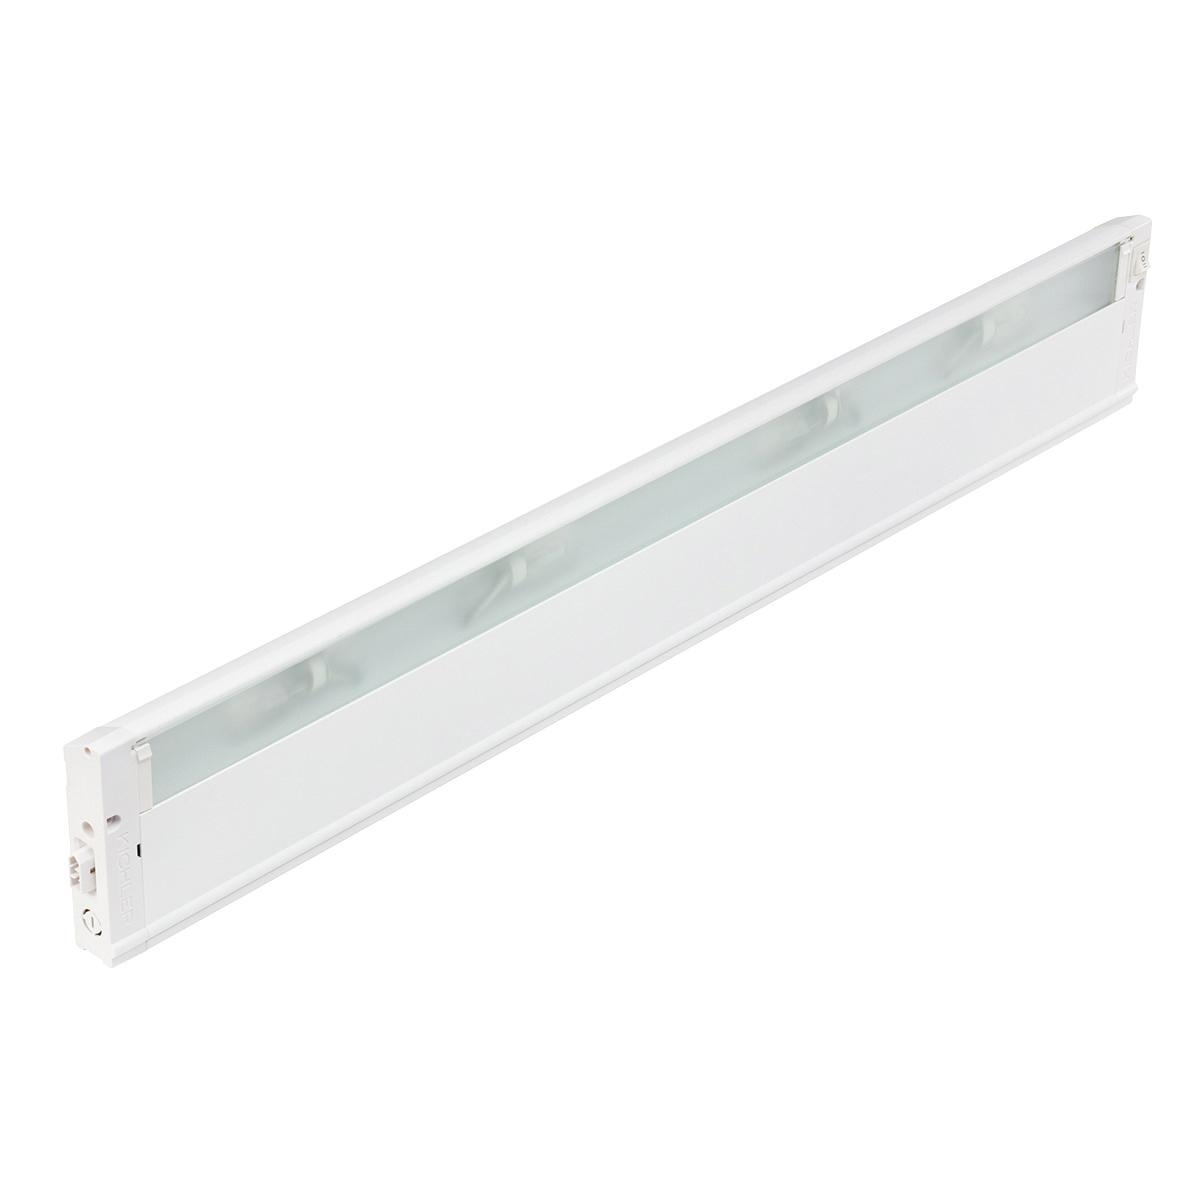 Kichler 4U12X30WHT 4U Series Under Cabinet Light Fixture 18 Watt 12 Volt 30  Inch Textured White